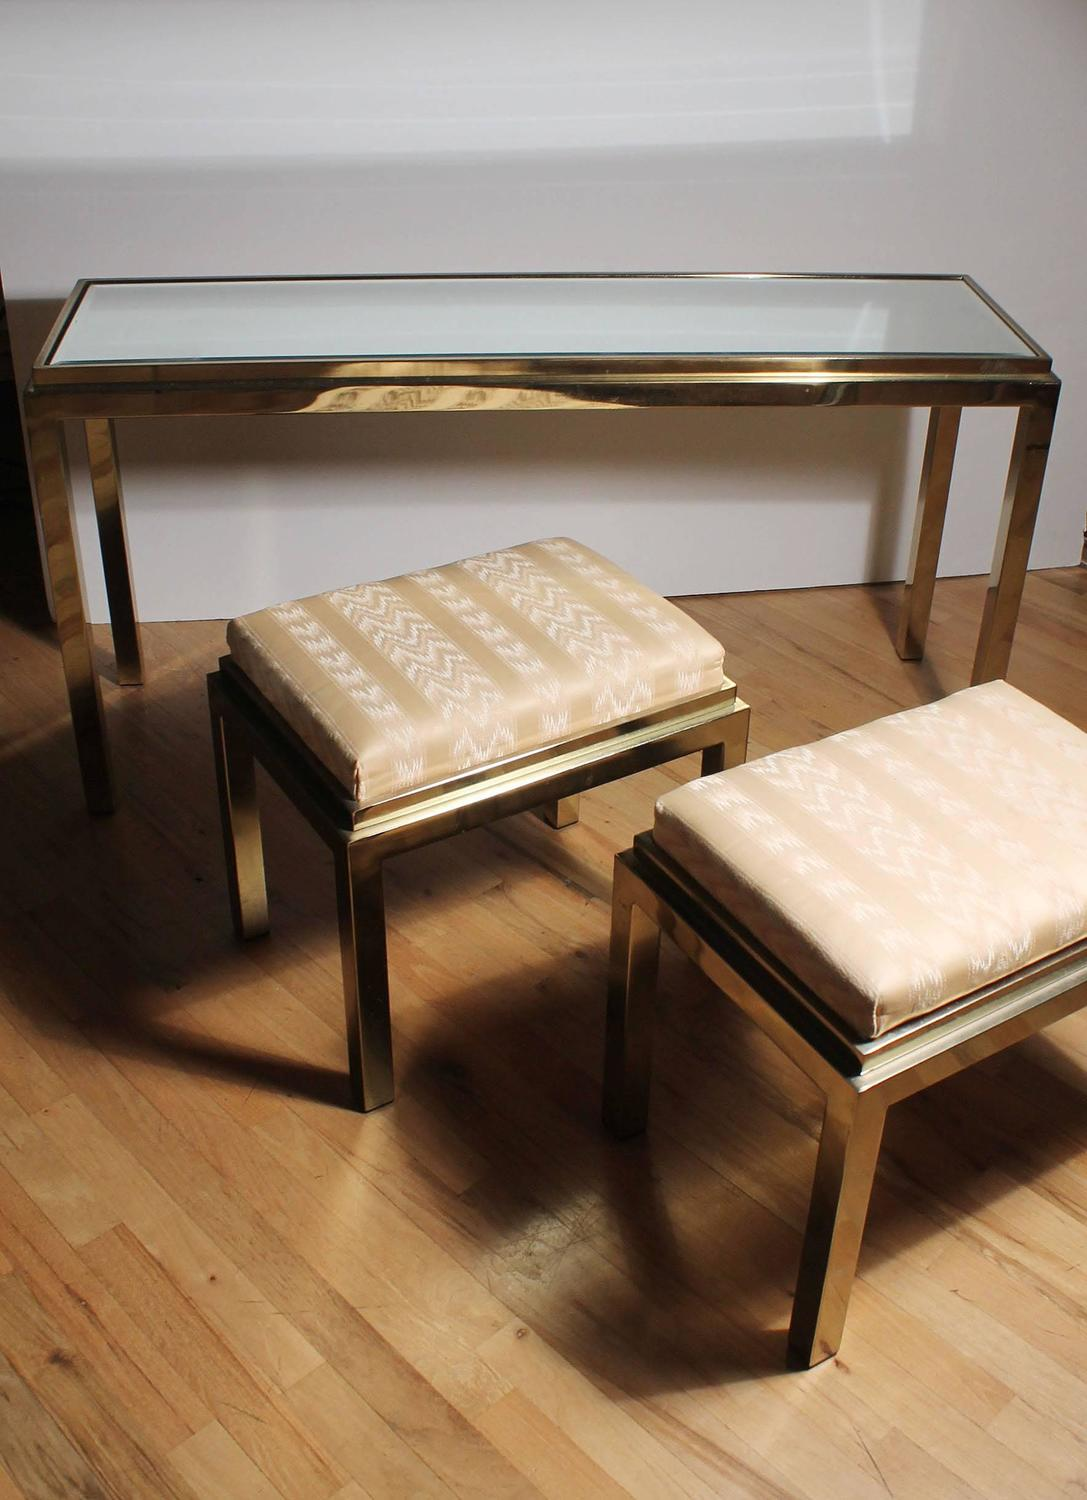 Sofa Table With Stools ~ Brass console sofa table with matching stools in style of